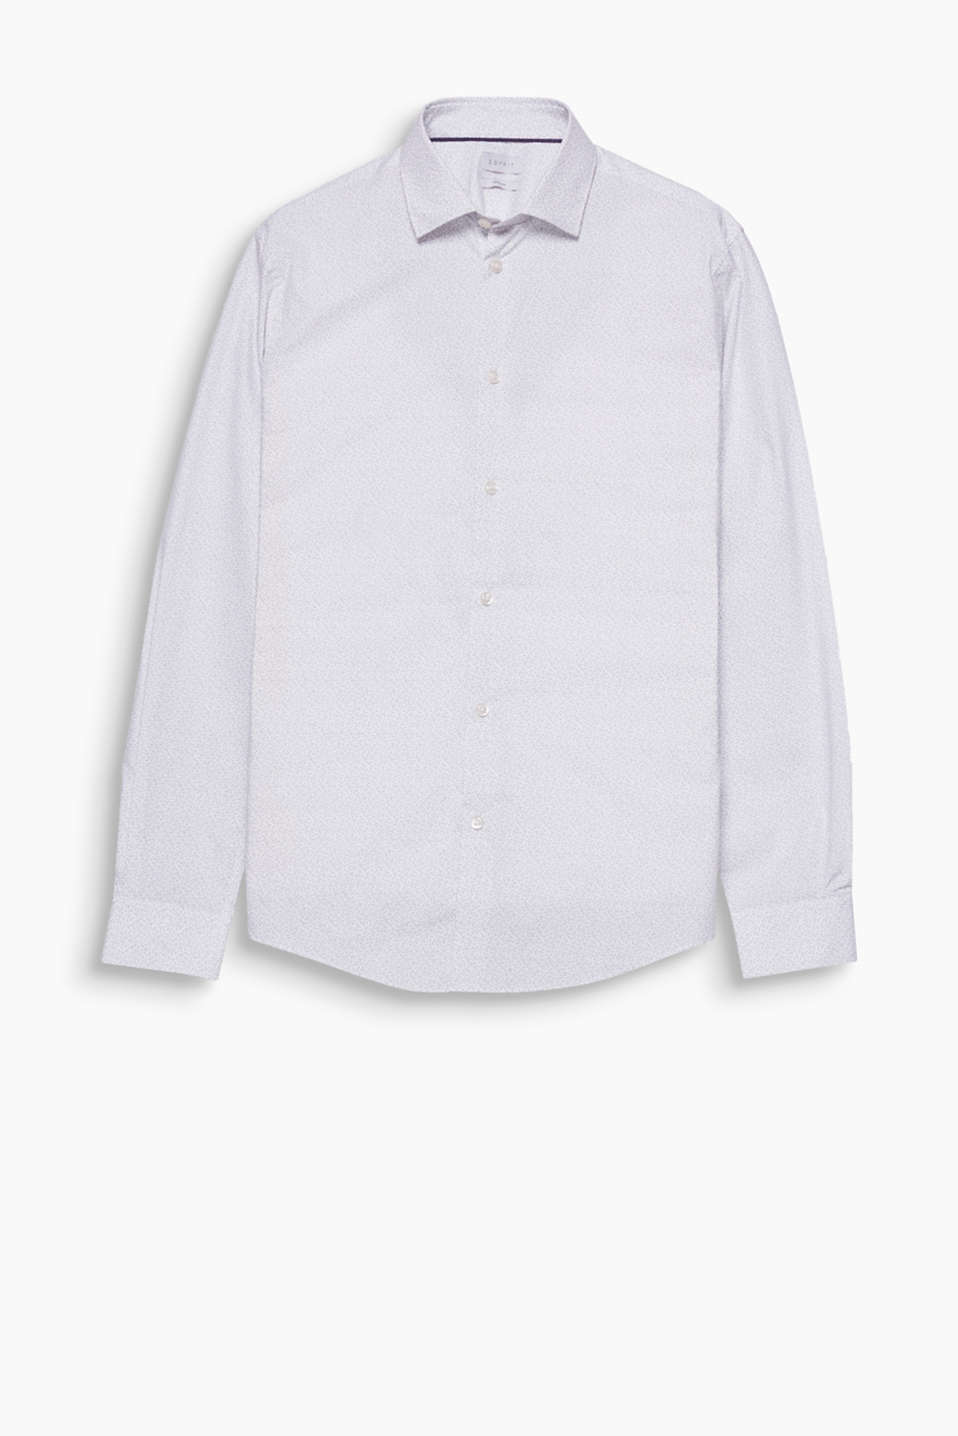 Classic Kent collar and a subtle, minimalist print featuring twig motifs: pure cotton shirt